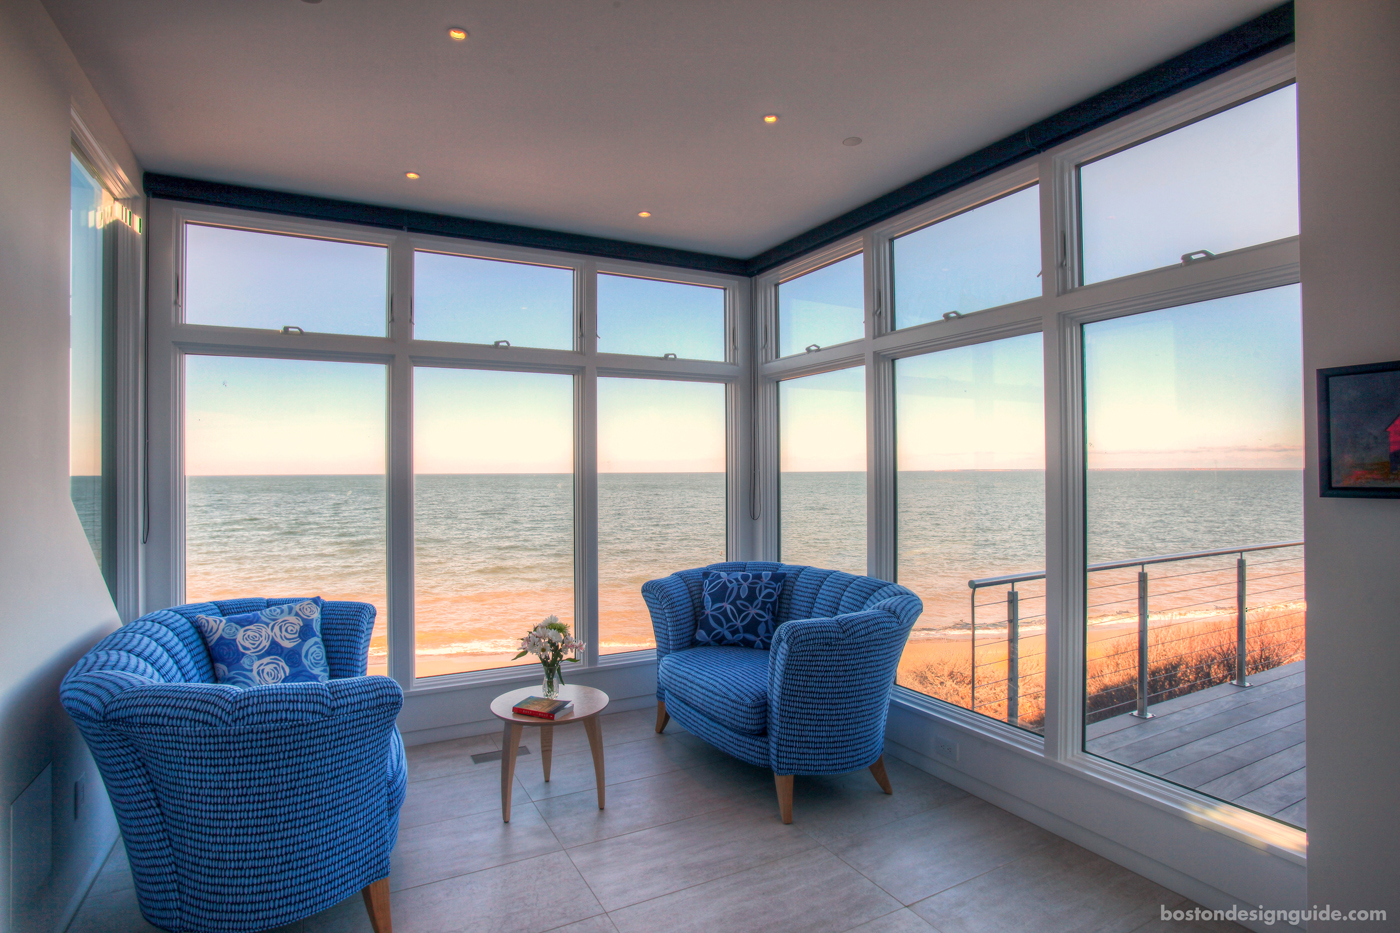 Sitting room on the beach